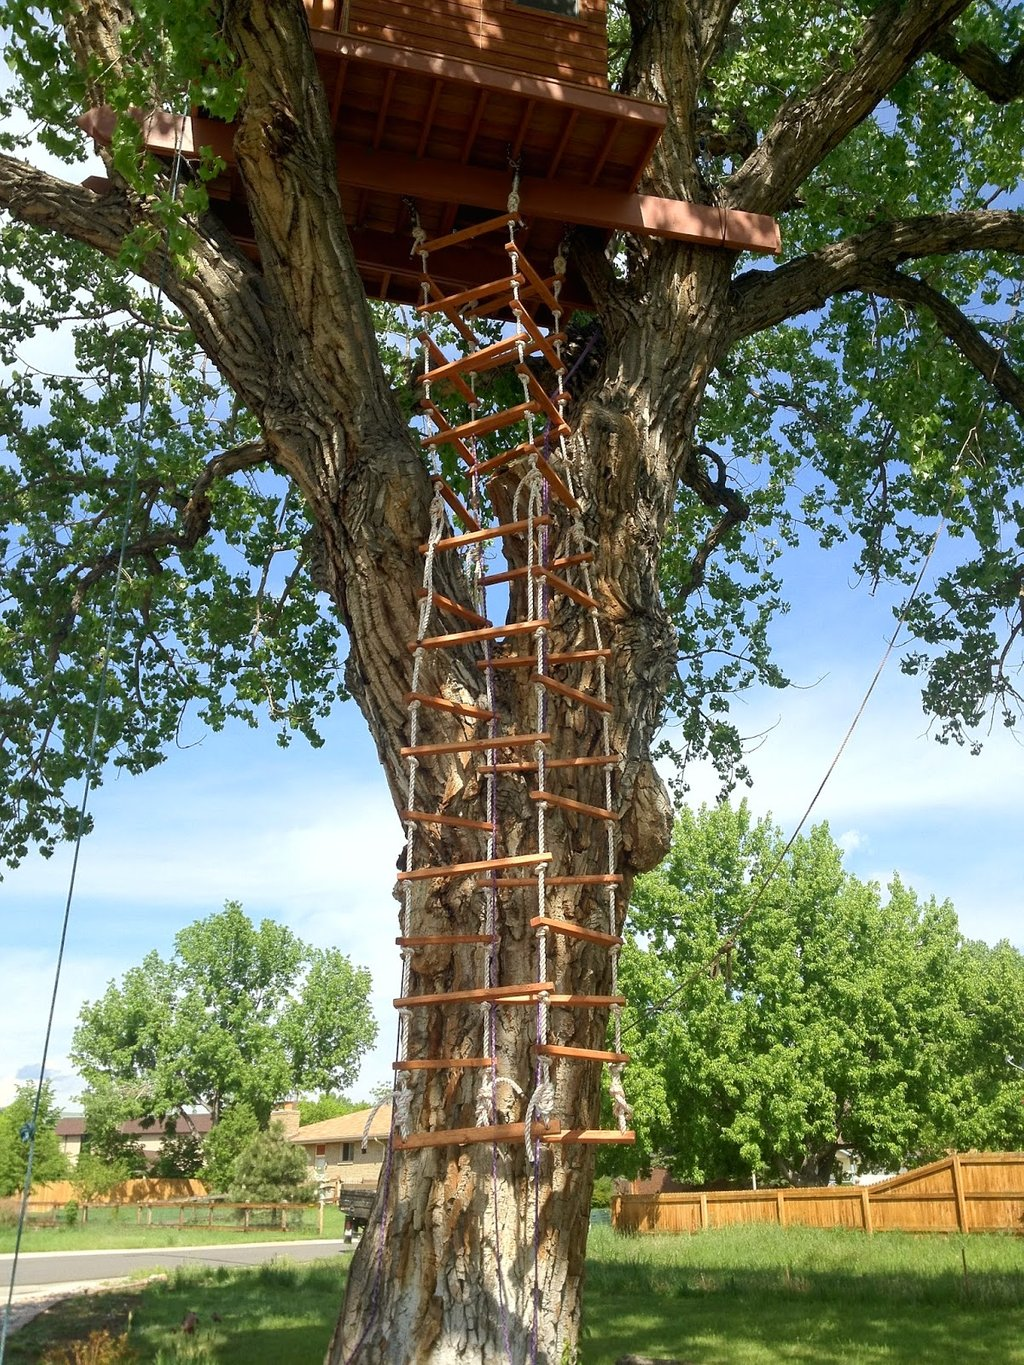 Treehouser Part 16 Hanging Treehouse Rope Ladder Outdoor Wooden Spiral Staircase